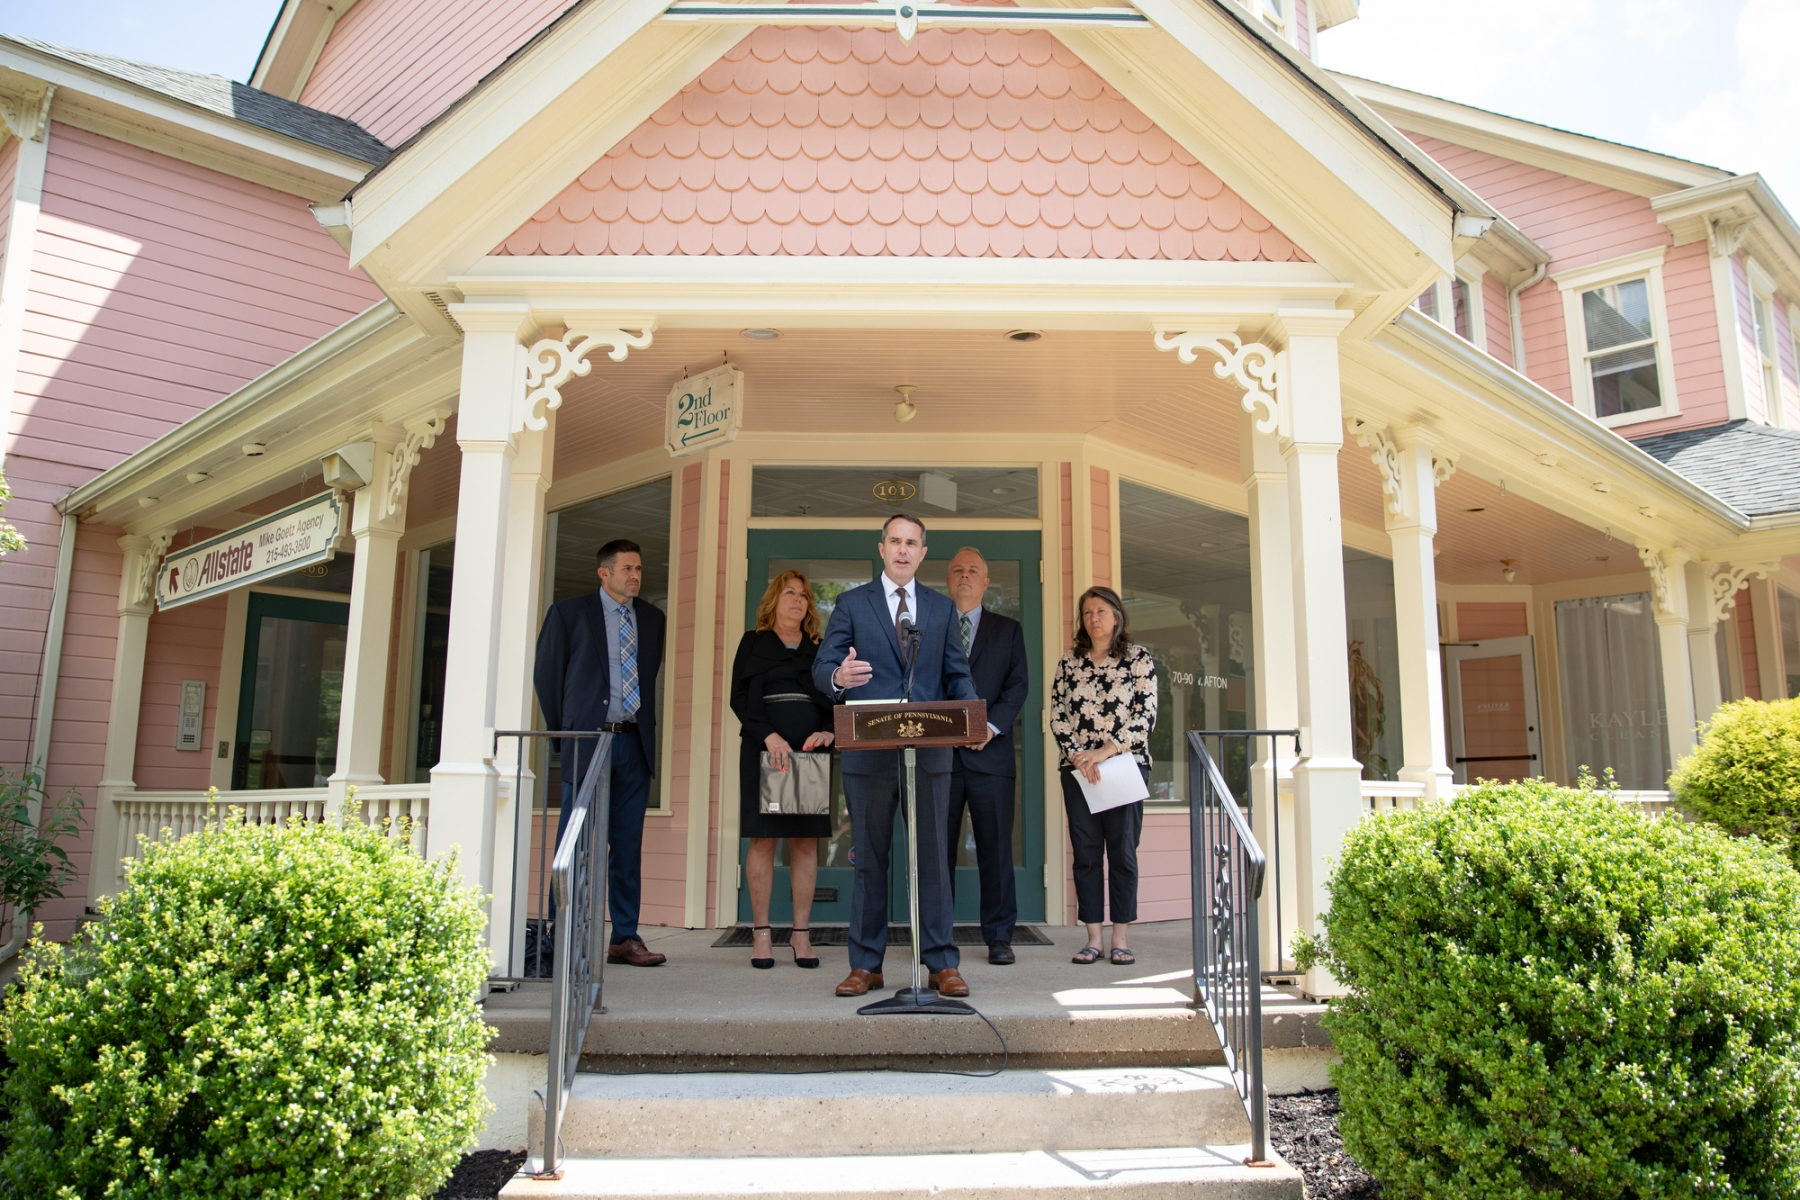 June 10, 2019 −  In front of the former office of Liberation Way in Yardley, an addiction treatment center accused of defrauding patients and health insurance companies, state Senator Steve Santarsiero (D-10), and state Representatives Tina Davis (D141) and Perry Warren (D-31) introduced SB 713 and HB 1018, legislation that would charge fraudulent addiction treatment facilities in Pennsylvania with a felony at the state level.